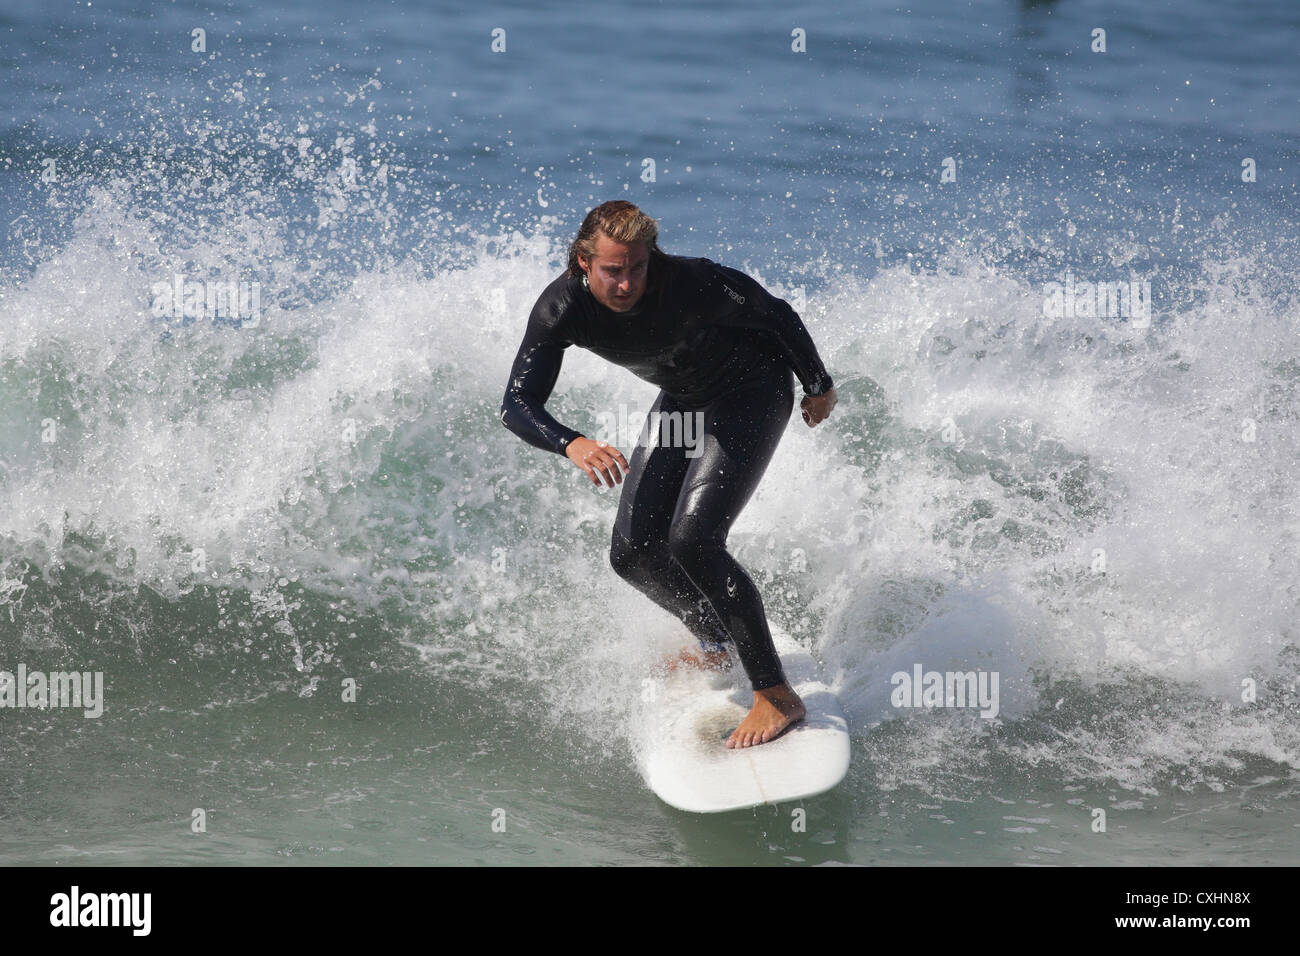 EL PORTO, MANHATTAN BEACH, CALIFORNIA, USA - OCTOBER 1. Surfers enjoy large waves on October 1, 2012. - Stock Image